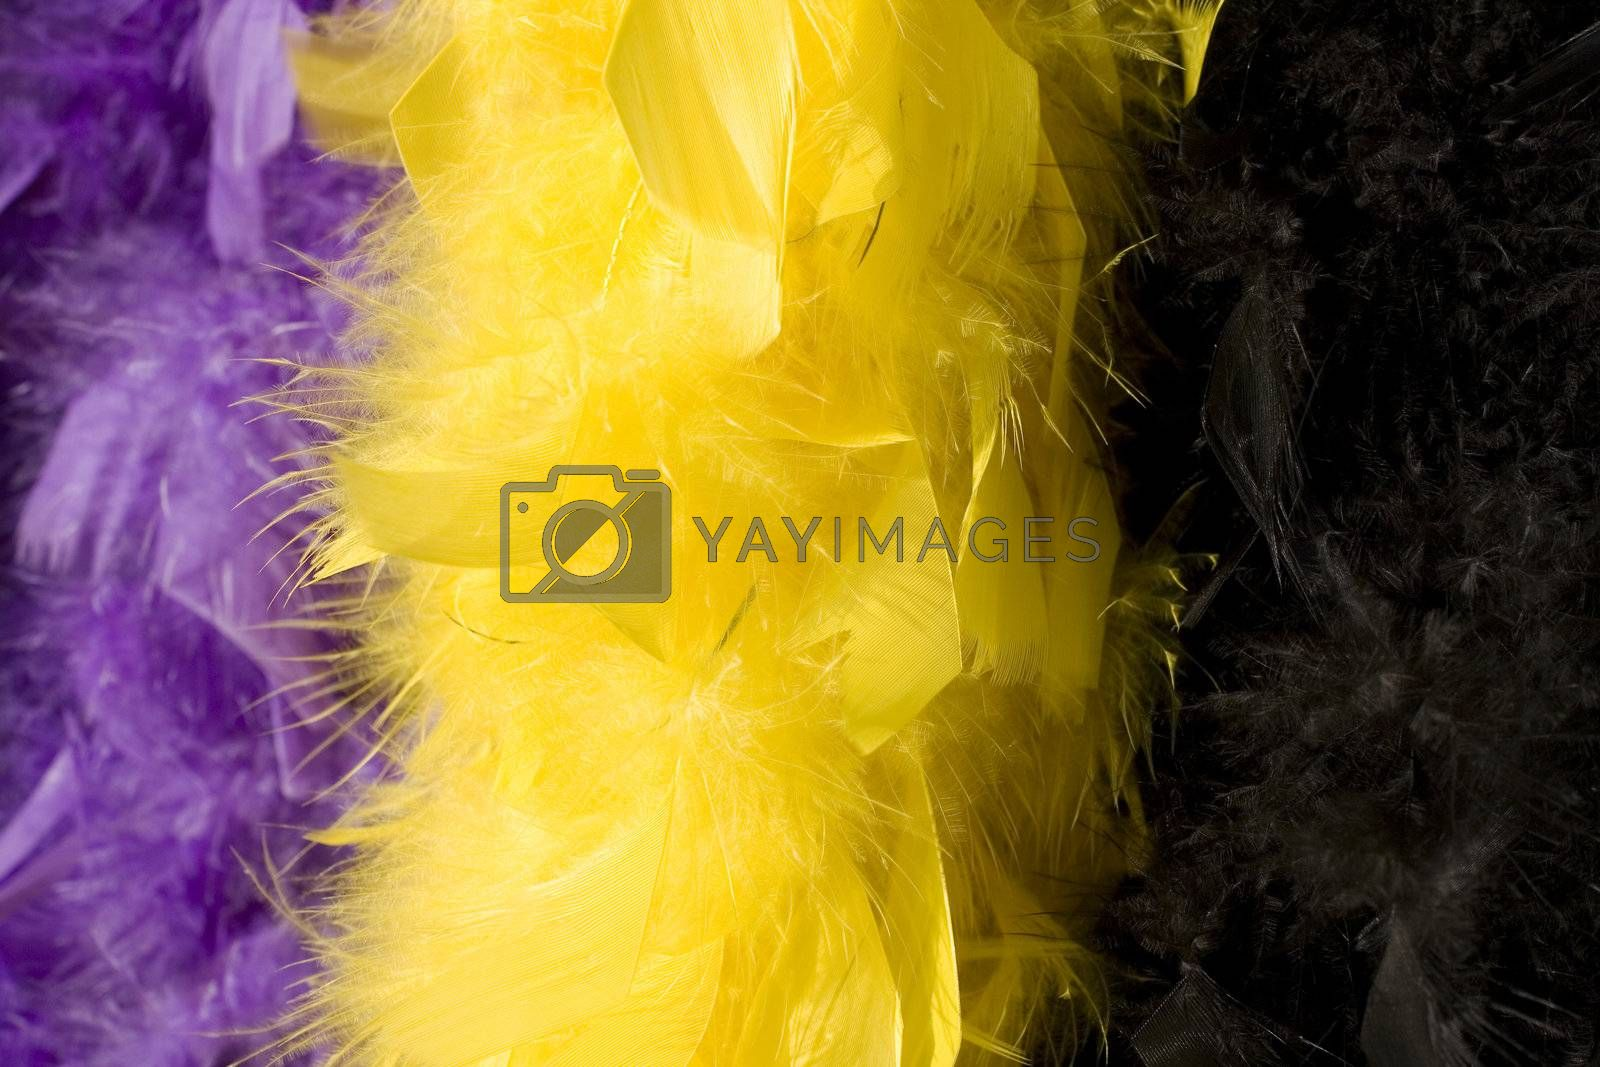 Plumage of duck yellow and black for wearing